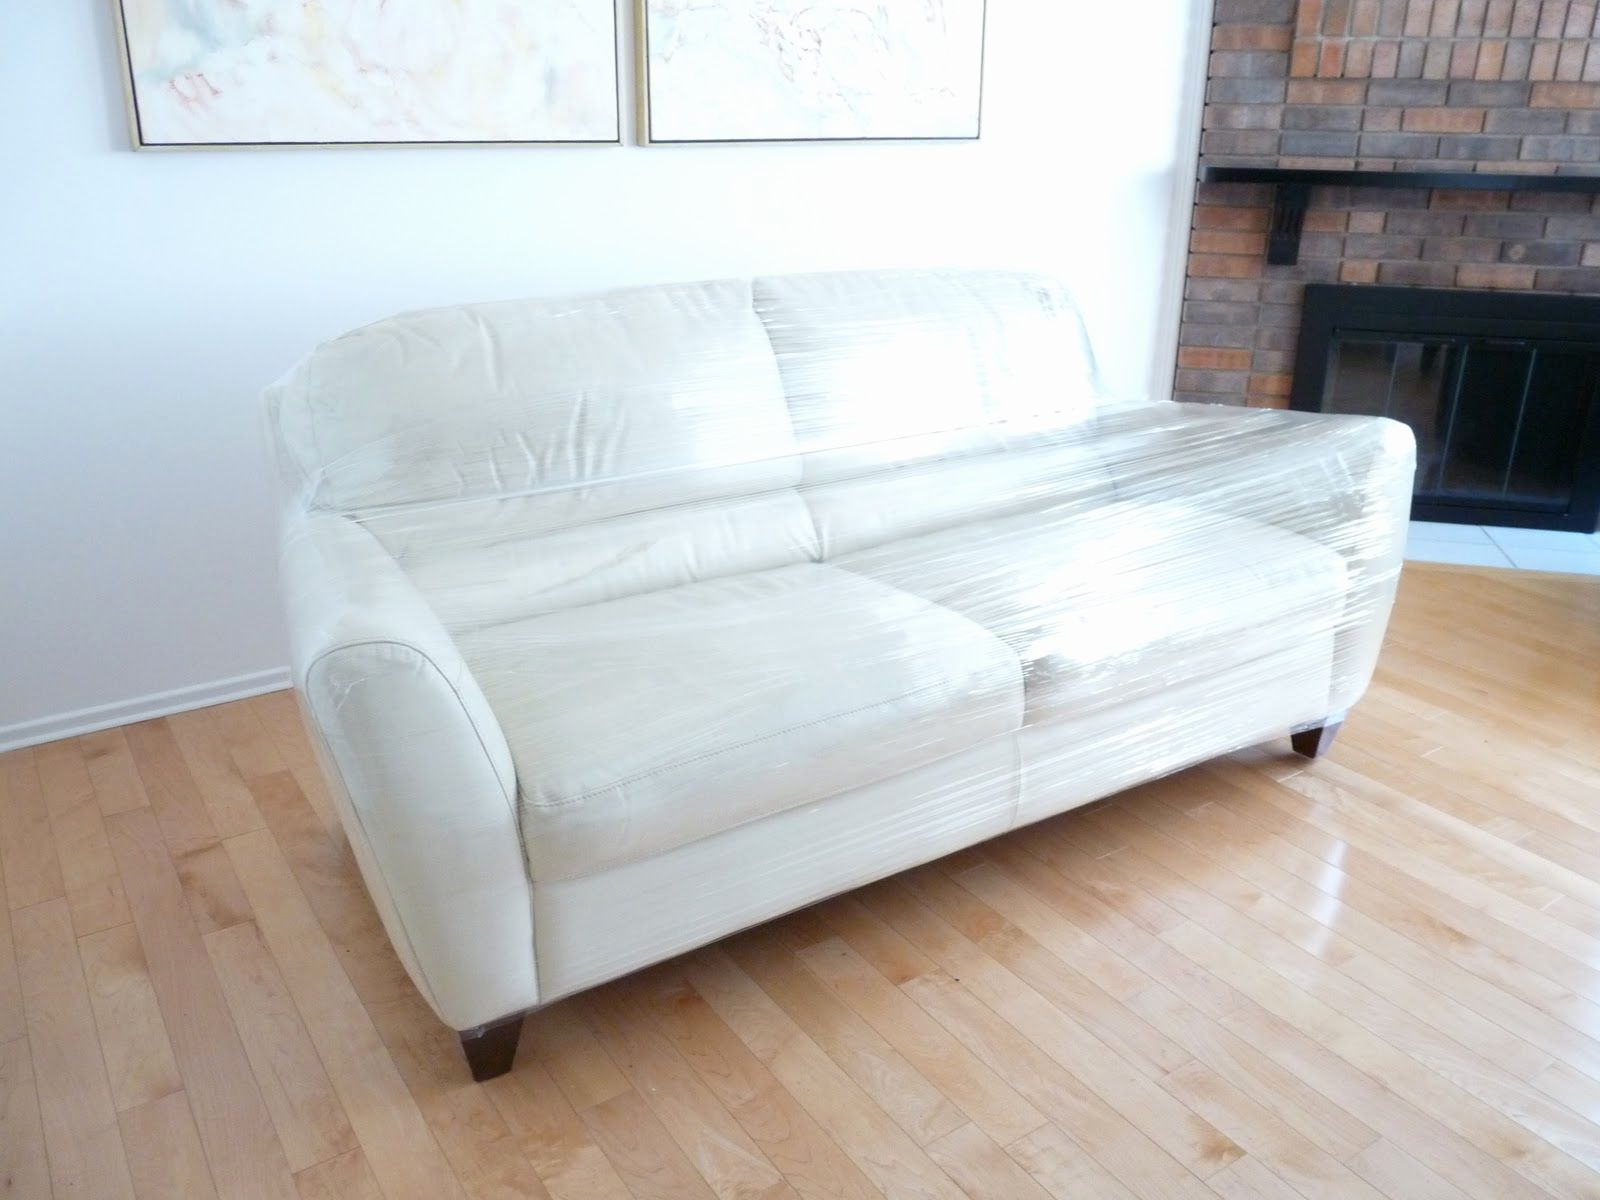 New Plastic Sofa Cover Shot Best Of Covers A